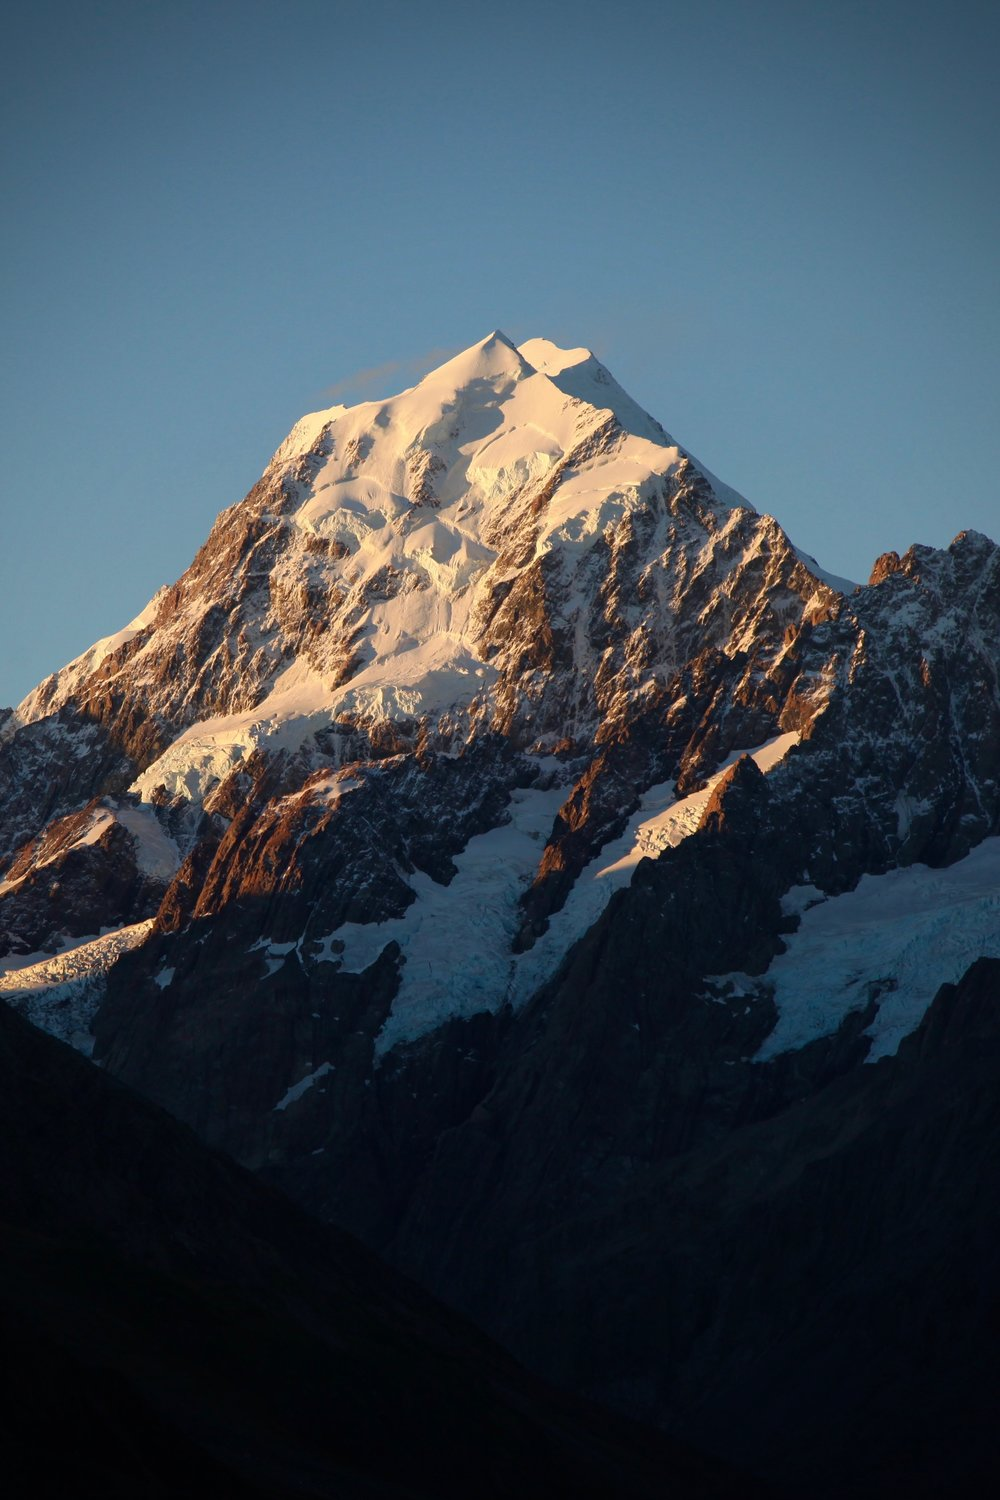 24 Hours in Aoraki Mt Cook National Park - The hiking tracks in the national park around Aoraki Mount Cook allow you to explore some of the incredible glacial valleys, mountains, and lakes that make up the breathtaking Southern Alps.